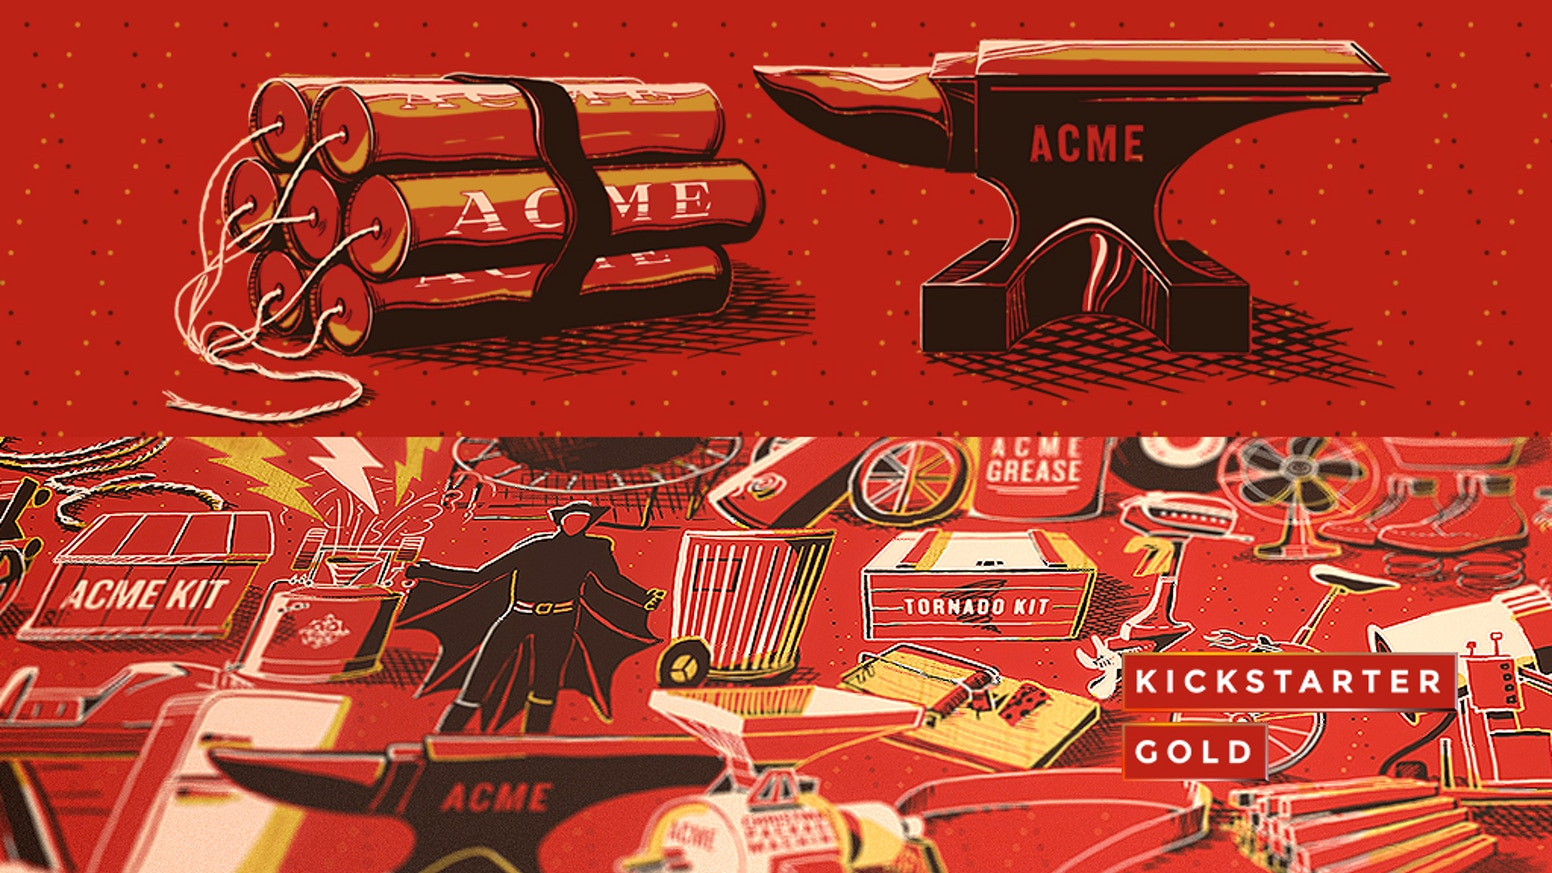 Posters of every ACME product, ever. 126 drawings of explosives, gadgets, rockets, and more!